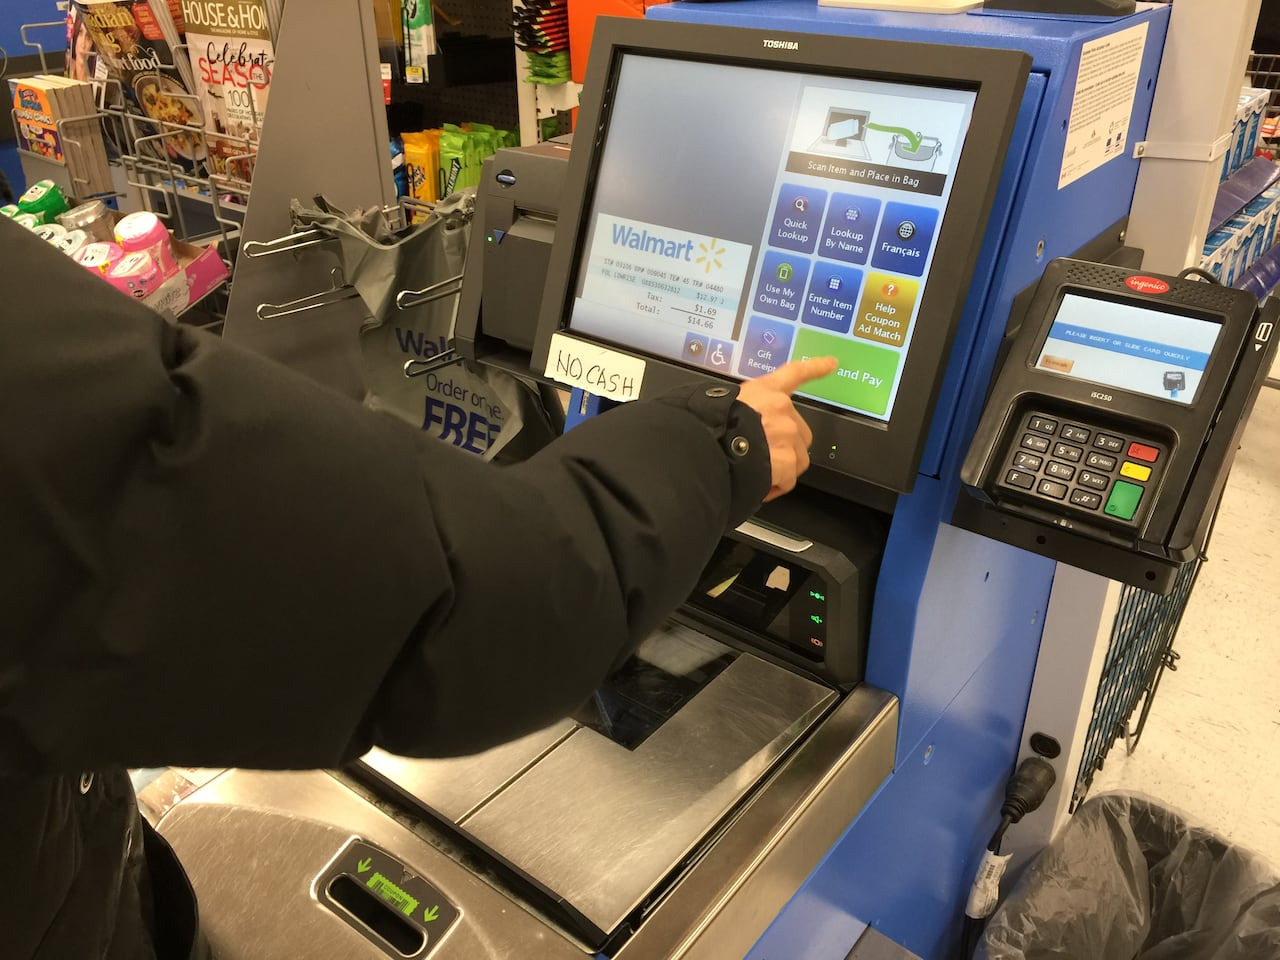 Walmart ramps up self-checkout, scales down 'scan and go